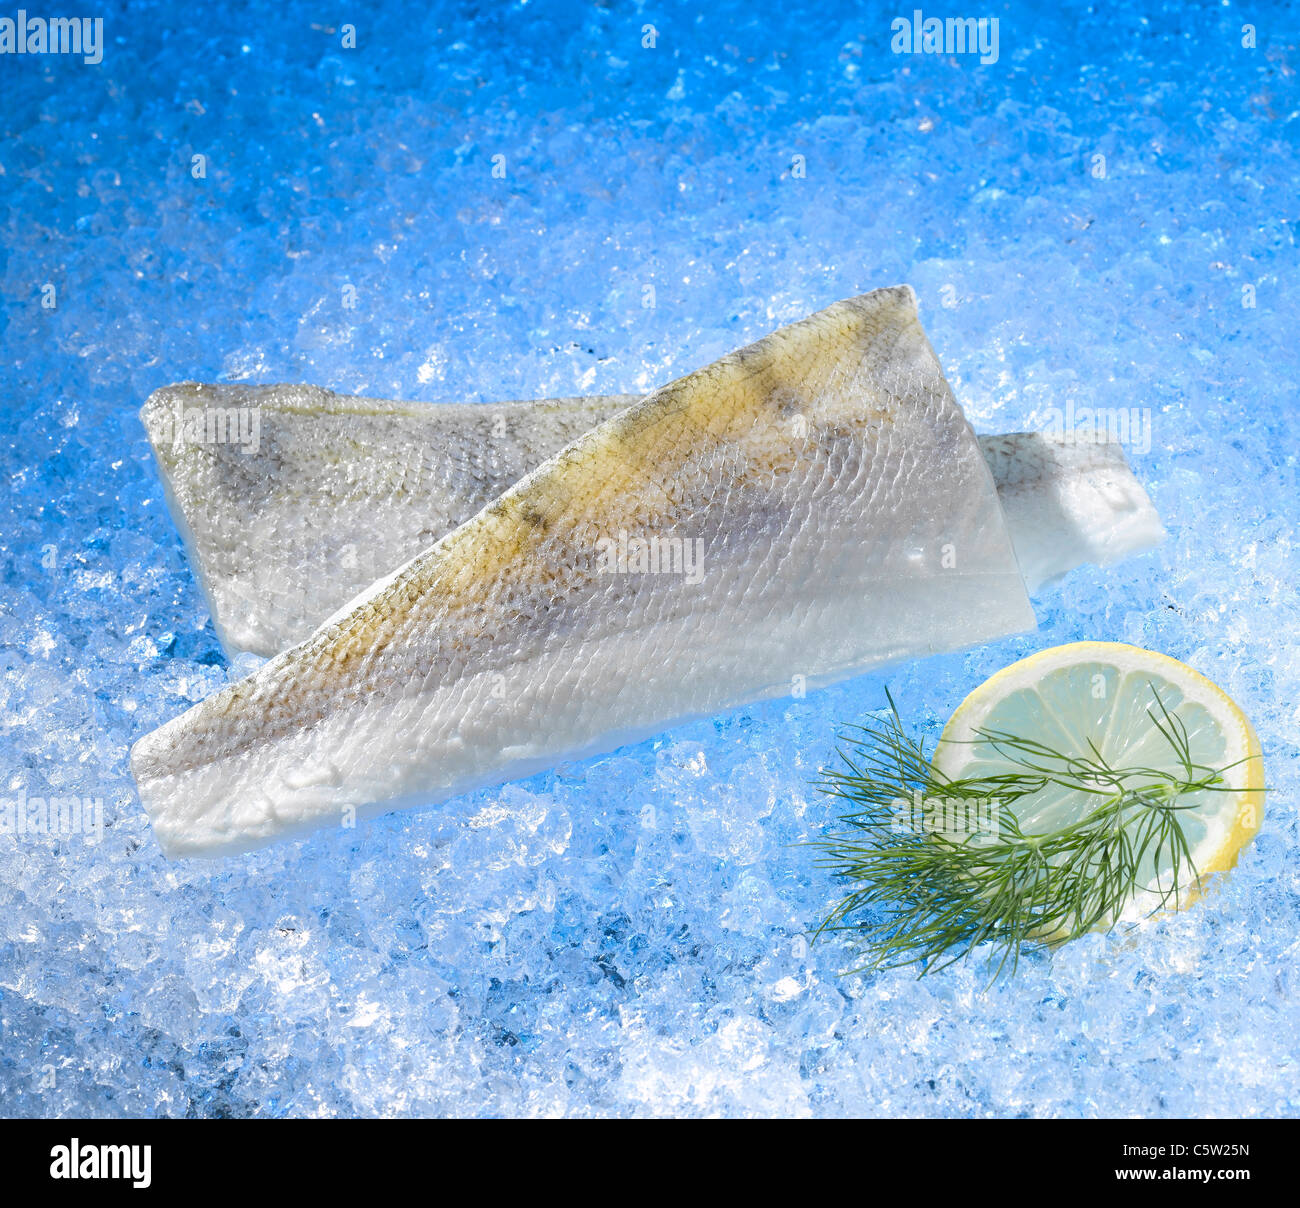 Pike perch on crushed ice, elevated view - Stock Image